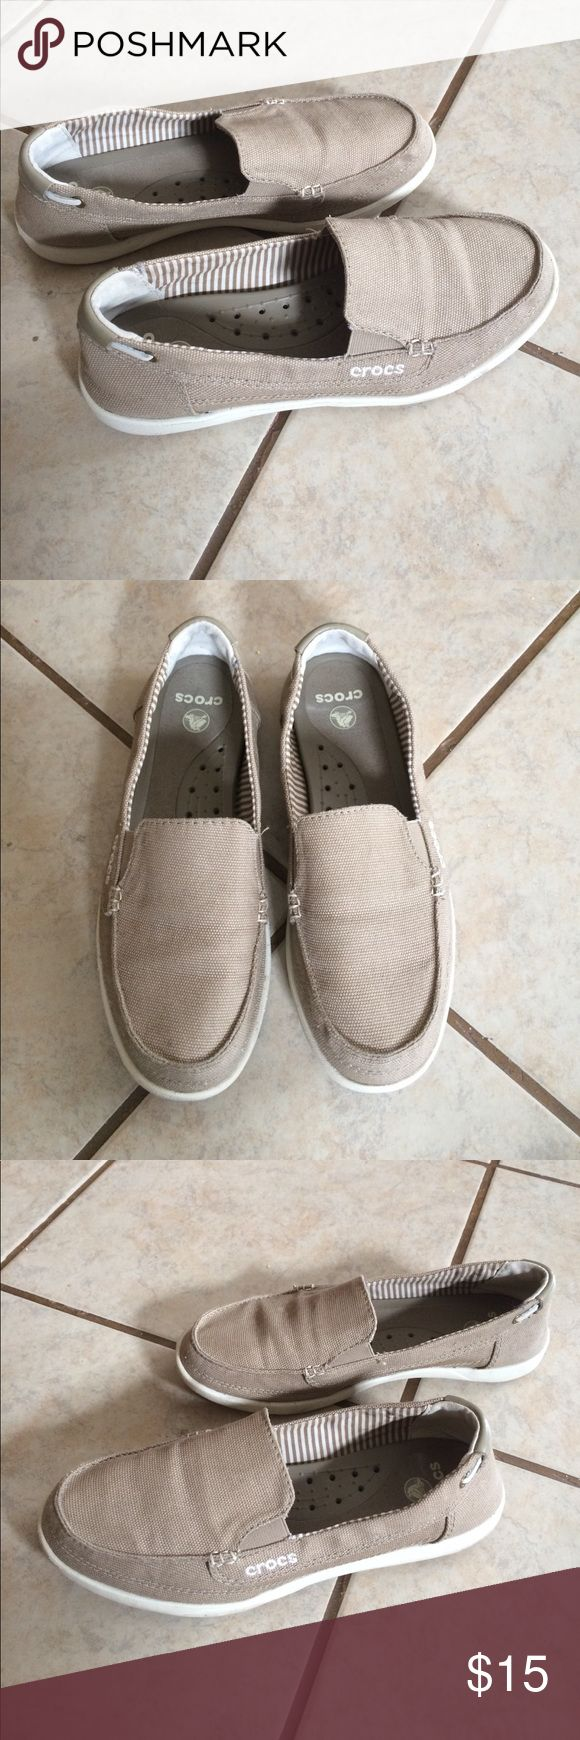 Women's Crocs boat shoe Crocs size W8 khaki/canvas boat shoe. Worn for one full day when I was pregnant and my feet were swollen, now they are just too big for me. Worn with socks (I always wear socks), so no odor. Great condition, very little visible wear. CROCS Shoes Flats & Loafers